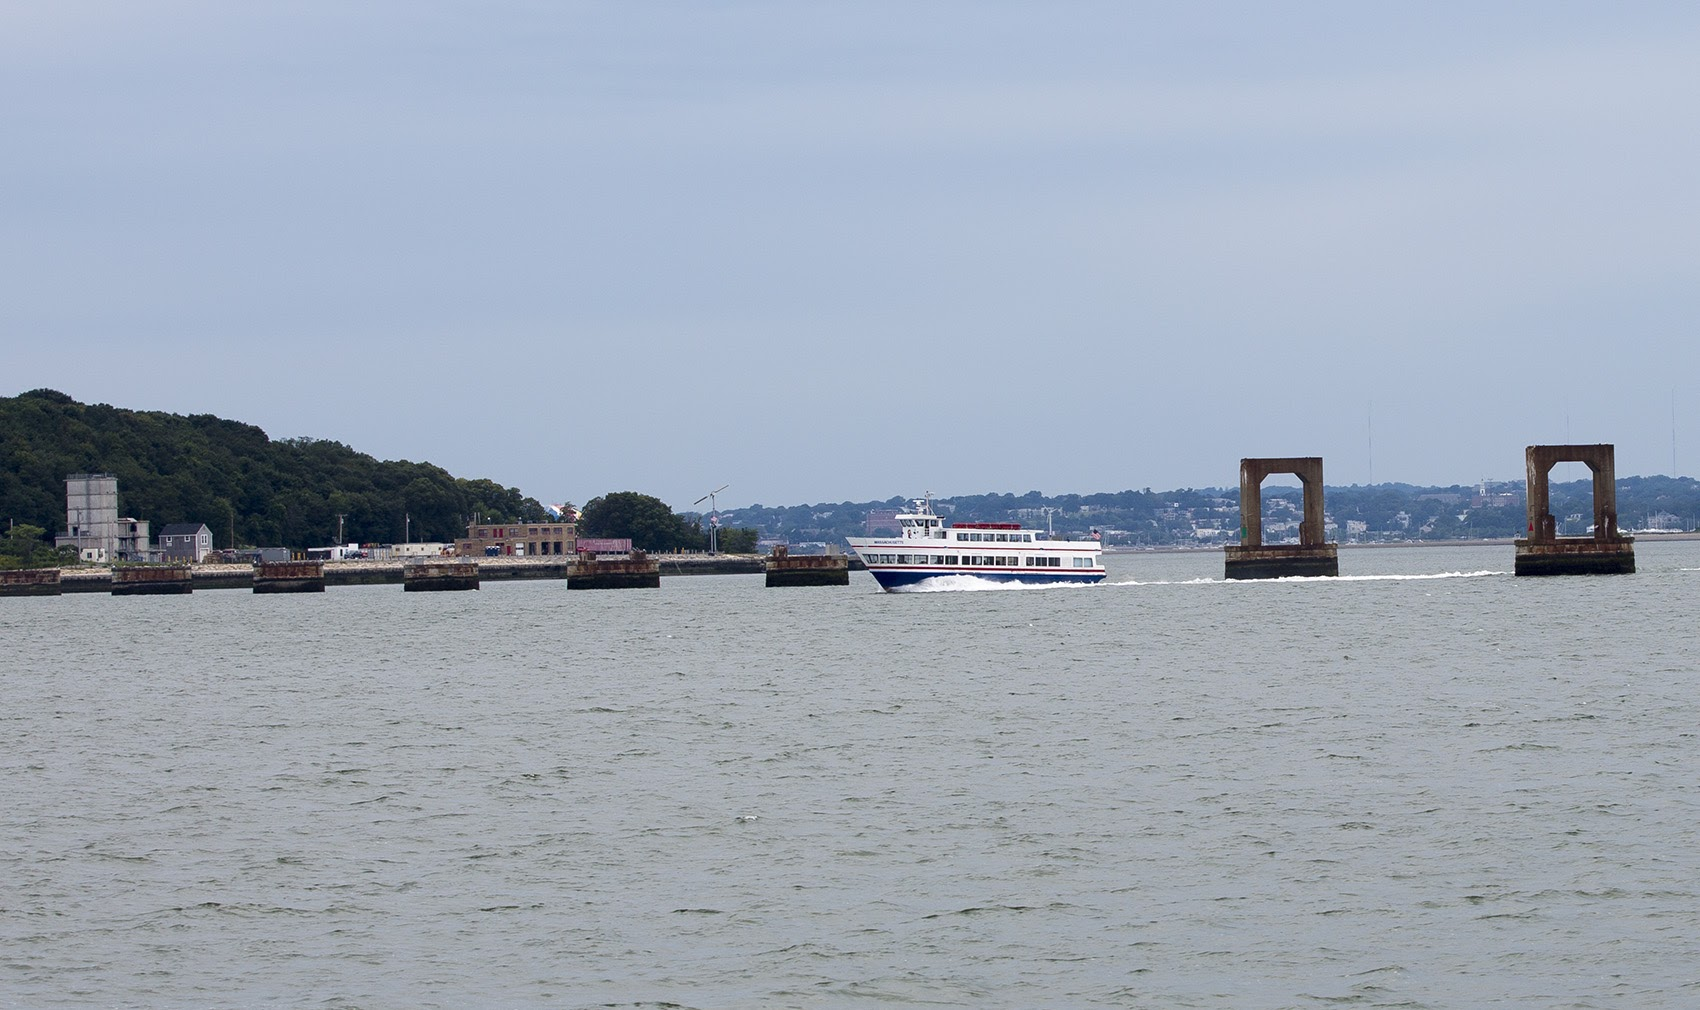 A ferry boat passes through the remnants of the Long Island Bridge in Boston Harbor in 2017. (Jesse Costa/WBUR)